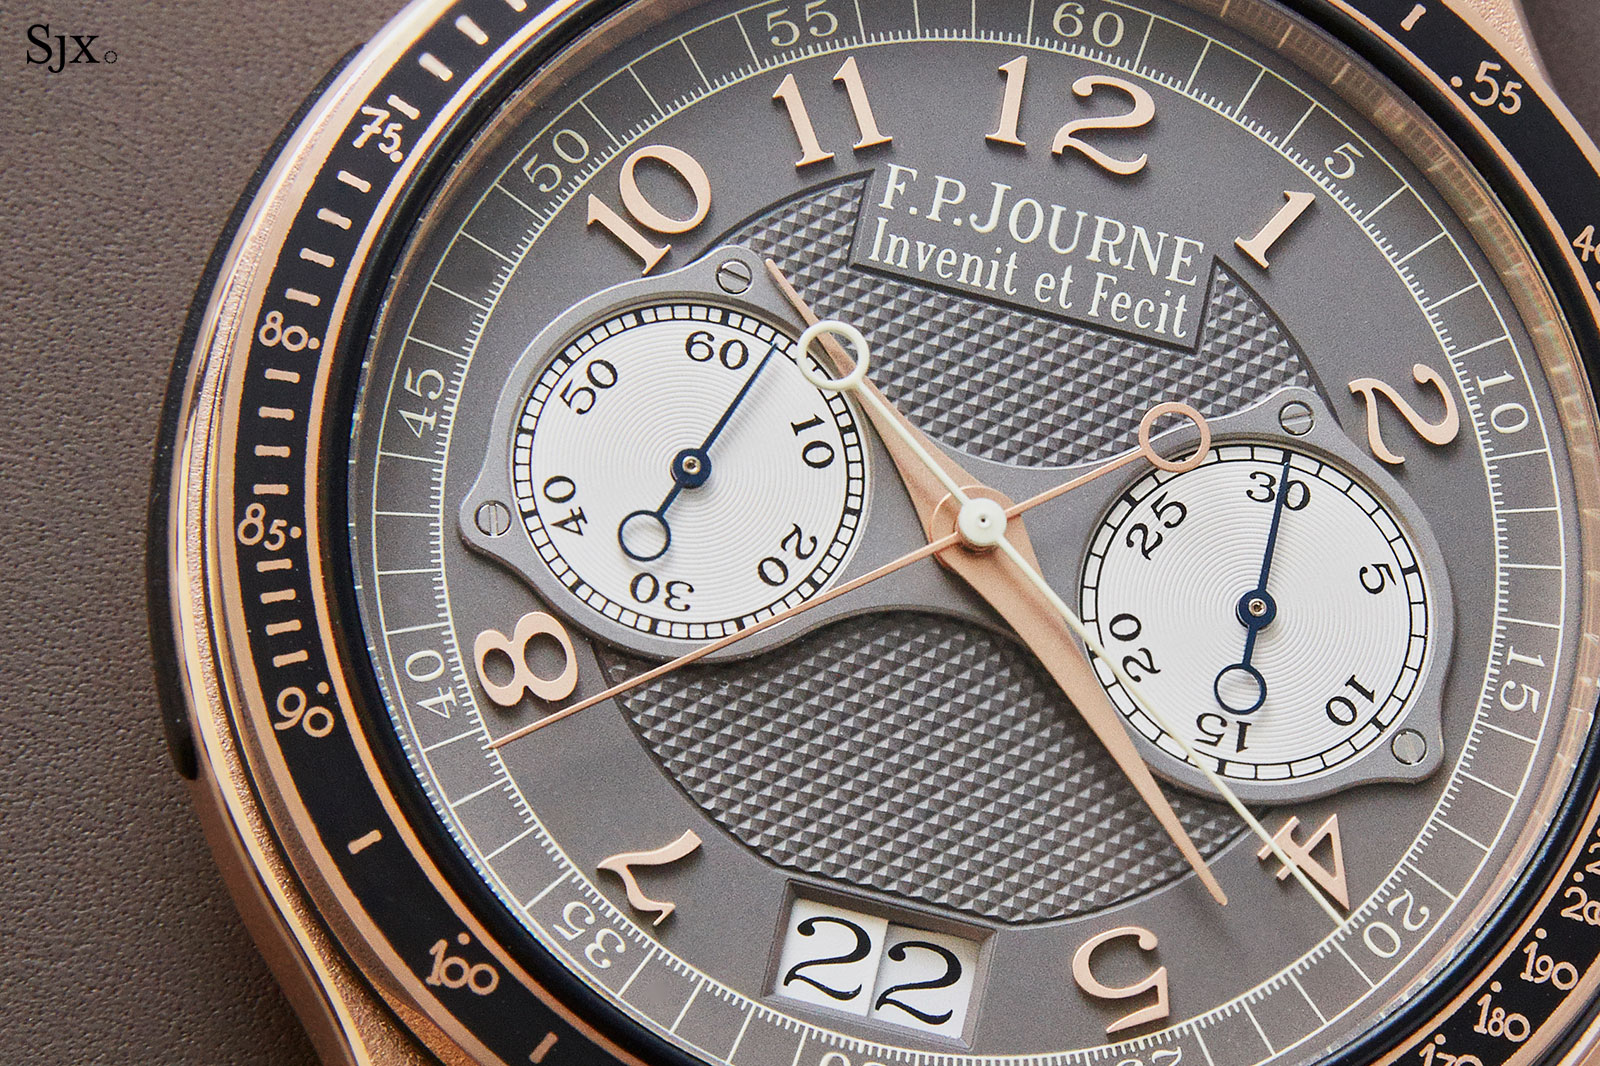 FP Journe Chronographe Monopoussoir Rattrapante rose gold 5